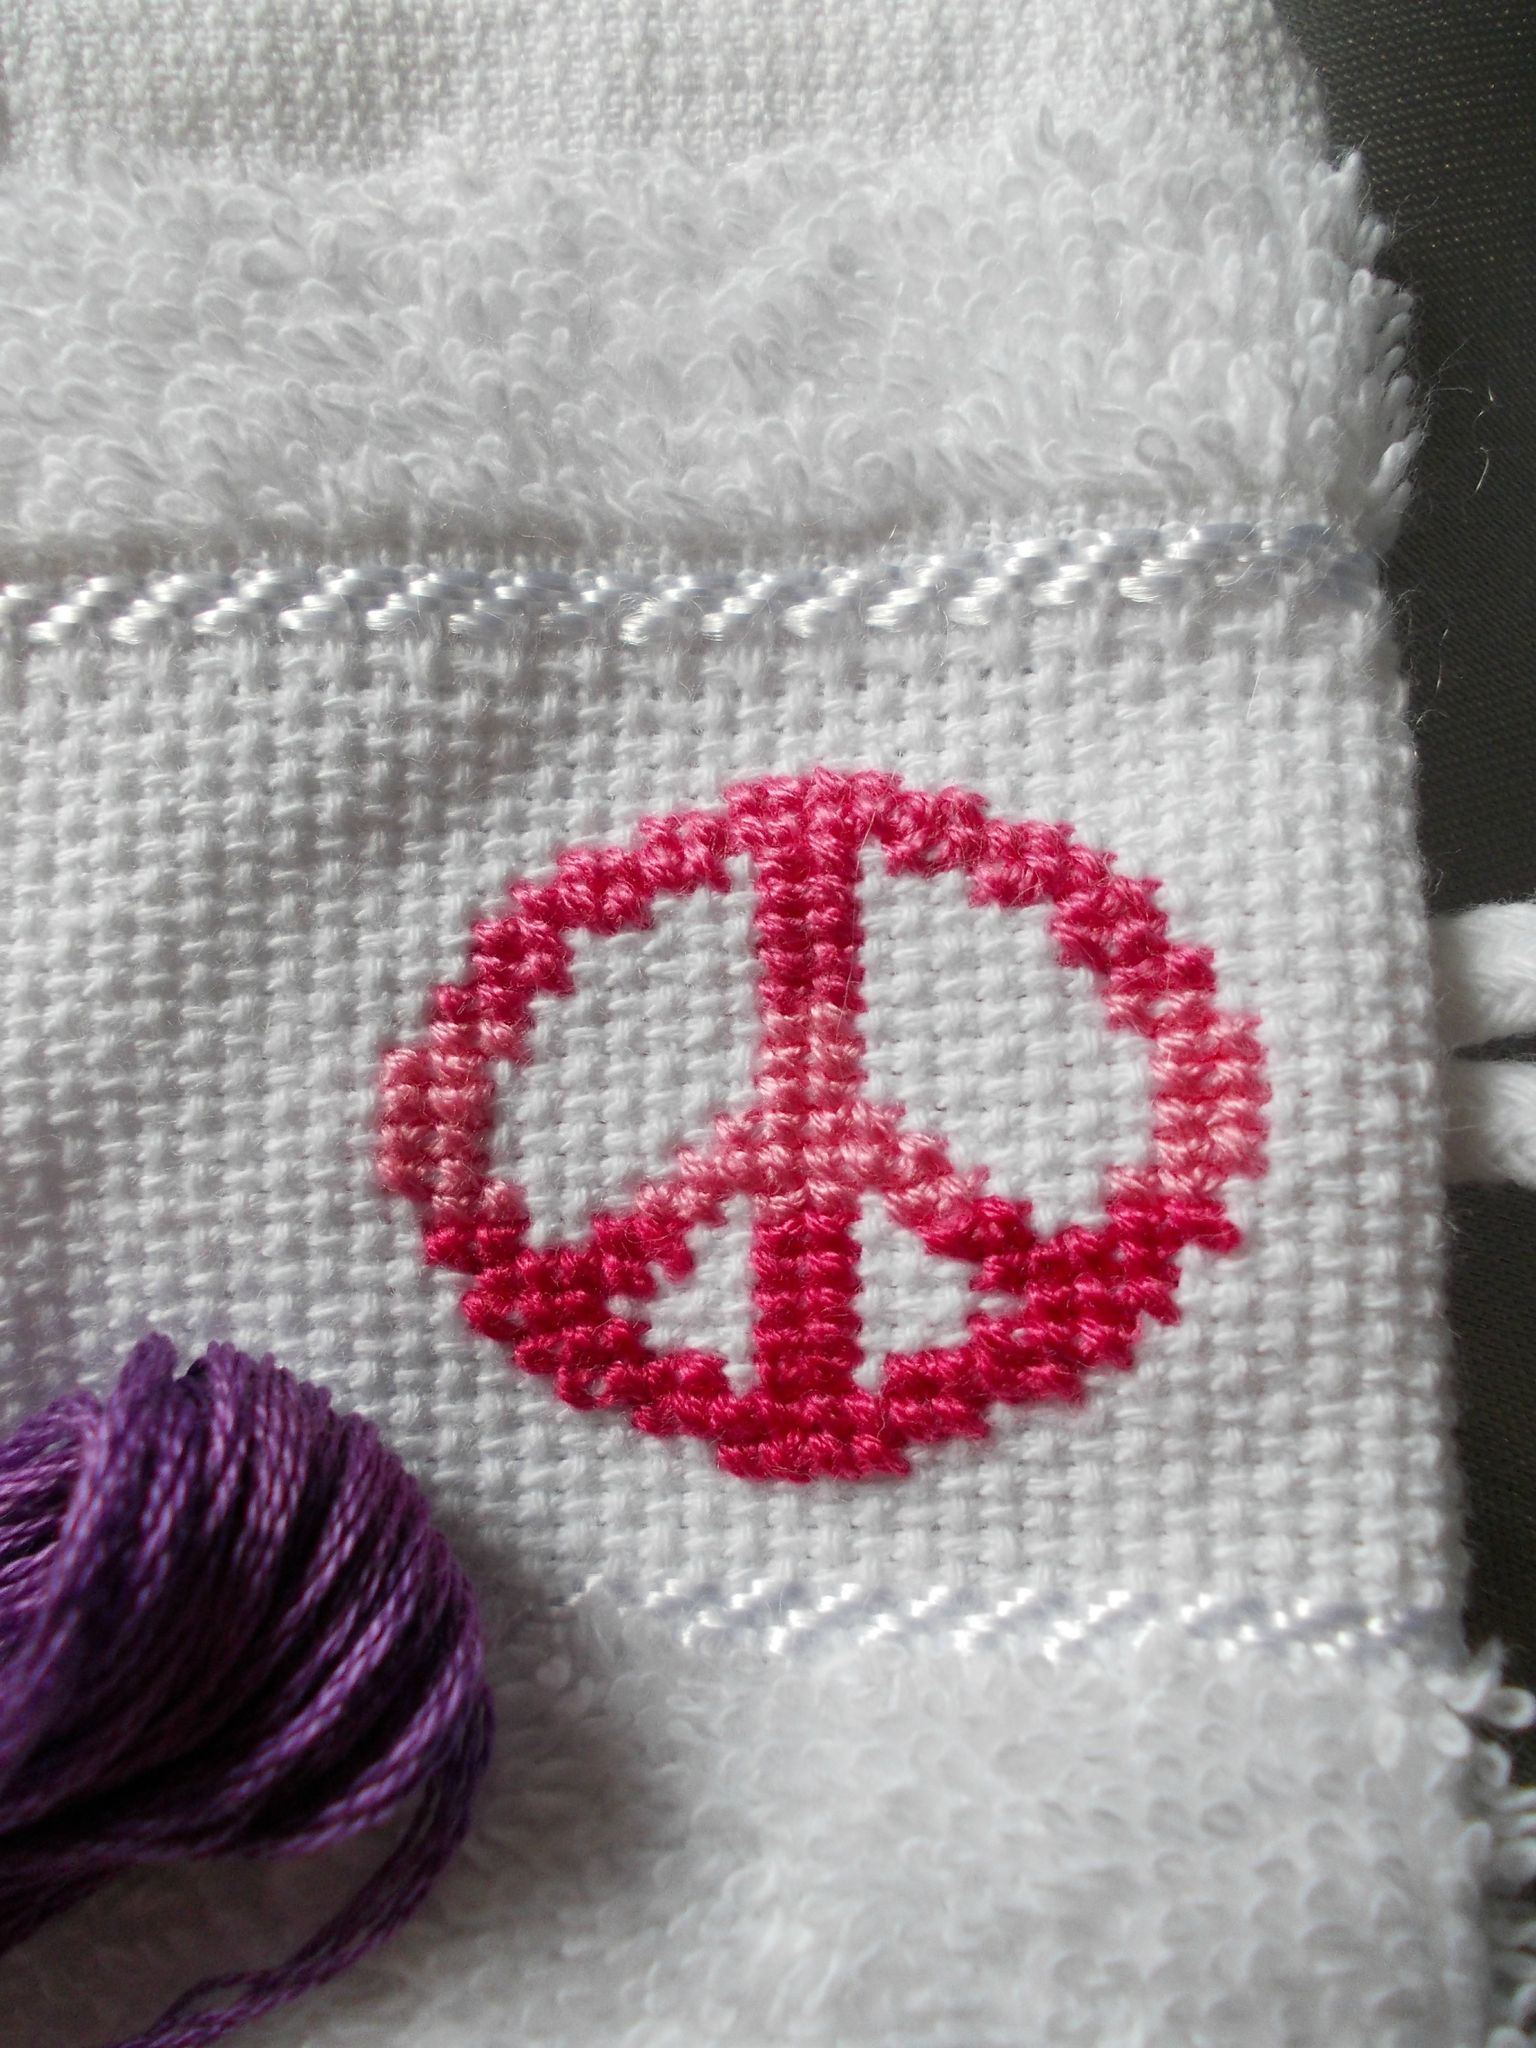 PEACE AND LOVE - DEGRADE ROSE